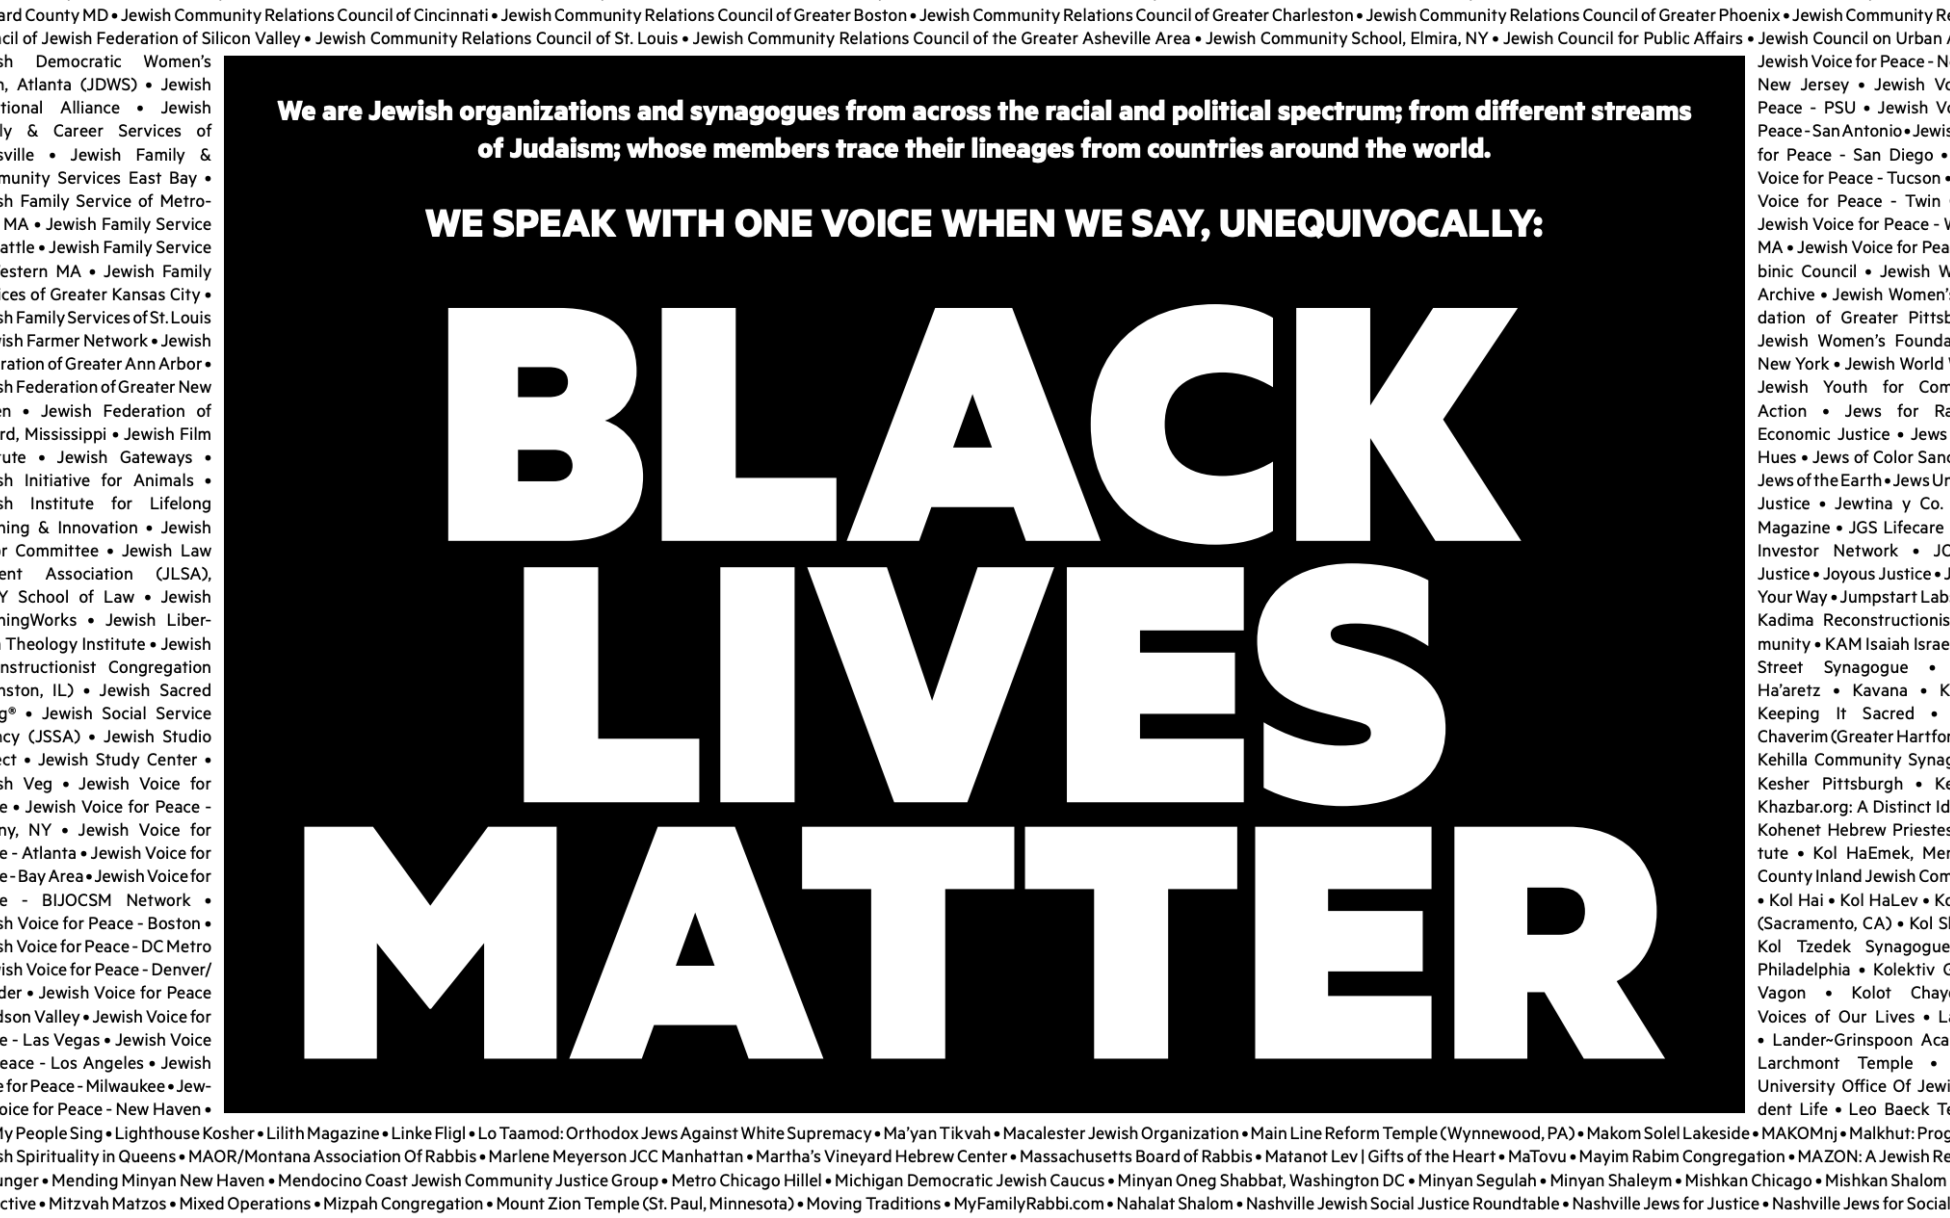 'Black Lives Matter,' declare groups representing majority of US Jews in NYT ad